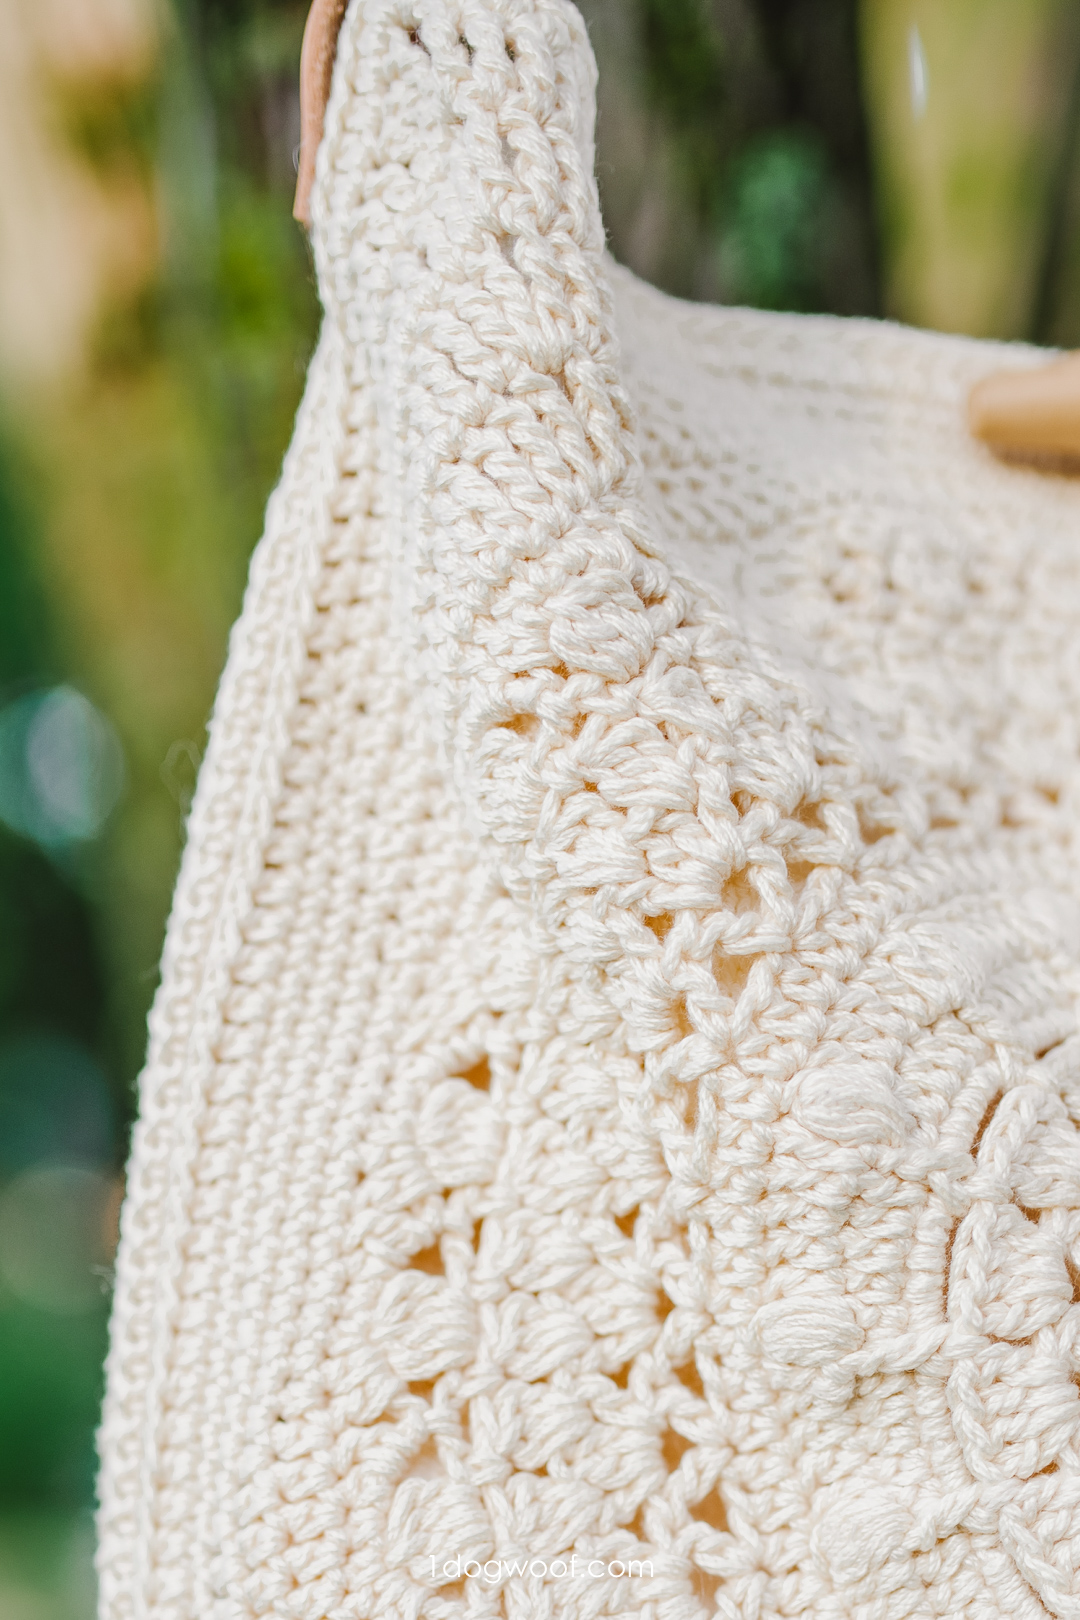 What to Do About Those Loose Crochet Stitches